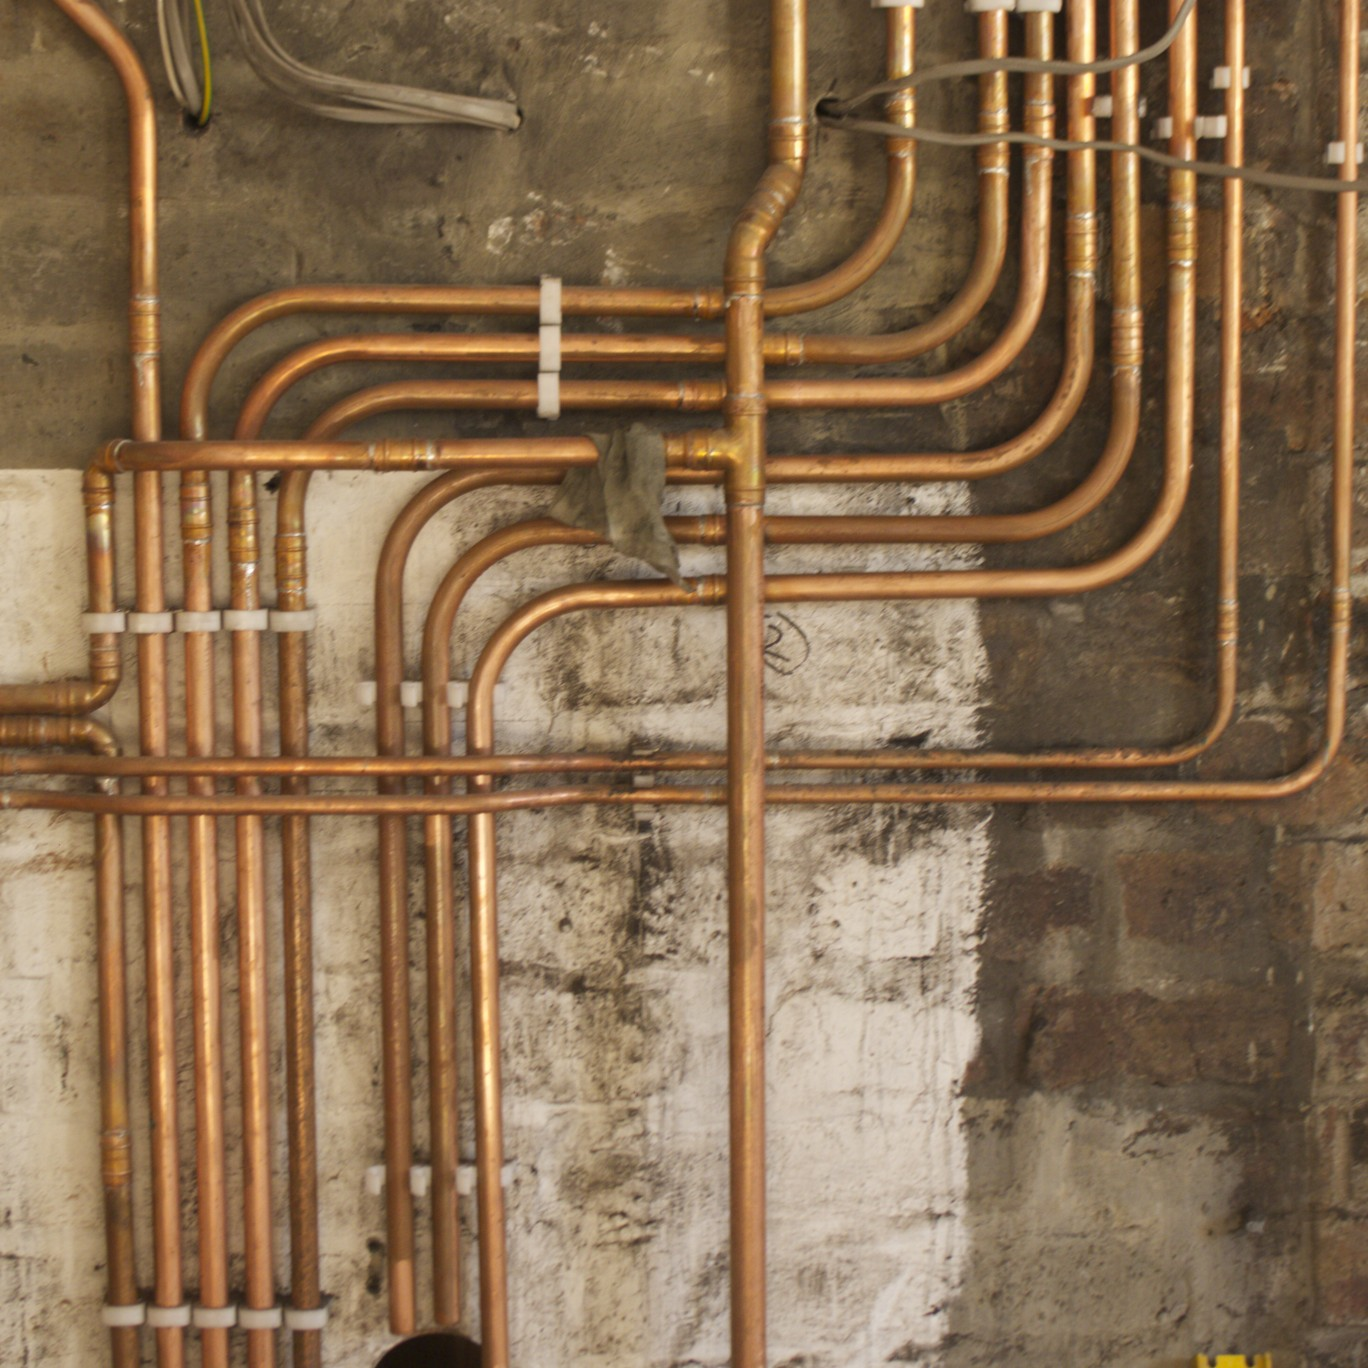 Price Of Copper Pipe For Plumbing Home Improvement